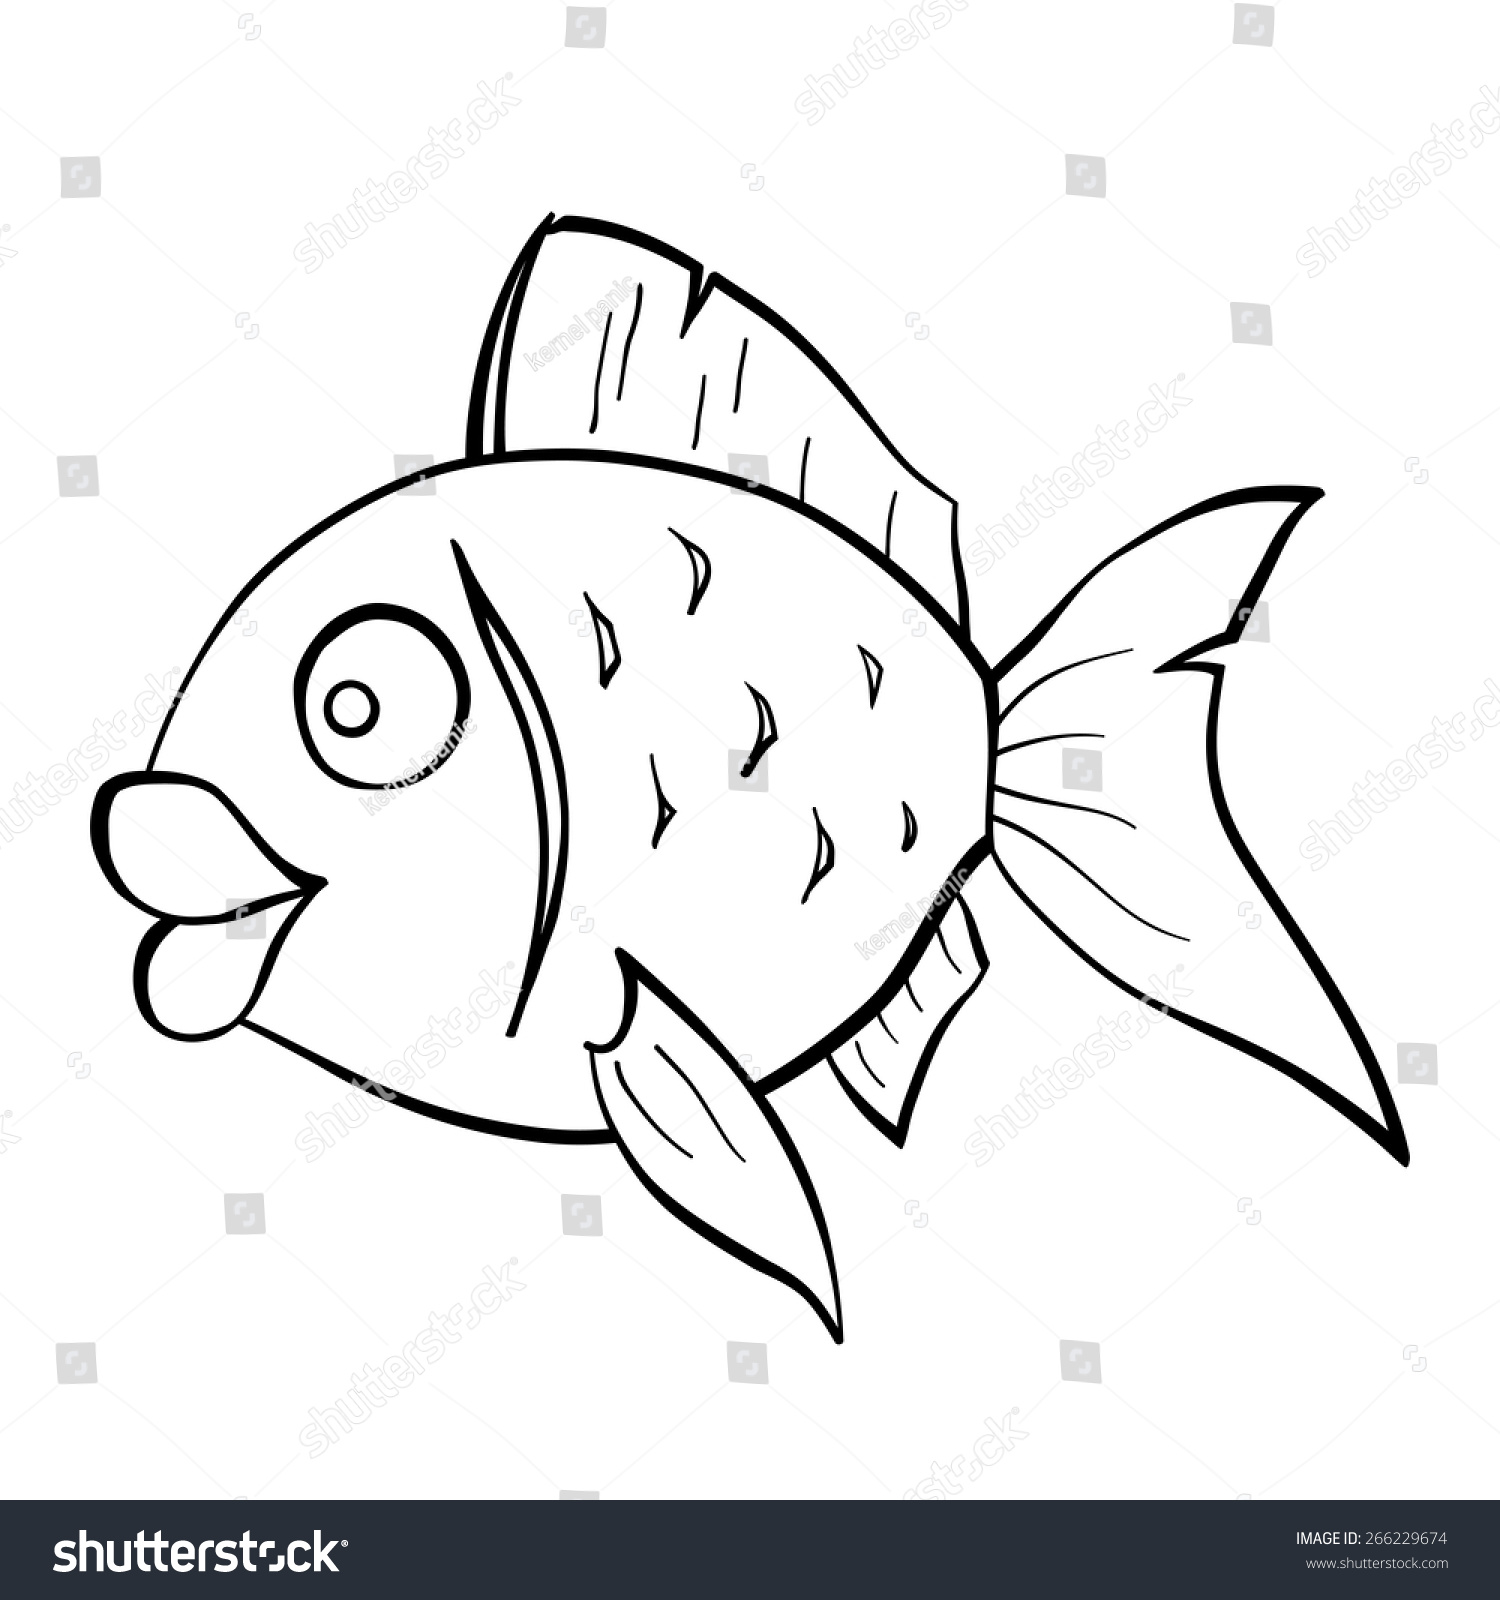 Black White Sketch Cartoon Goldfish Stock Vector 266229674 ...